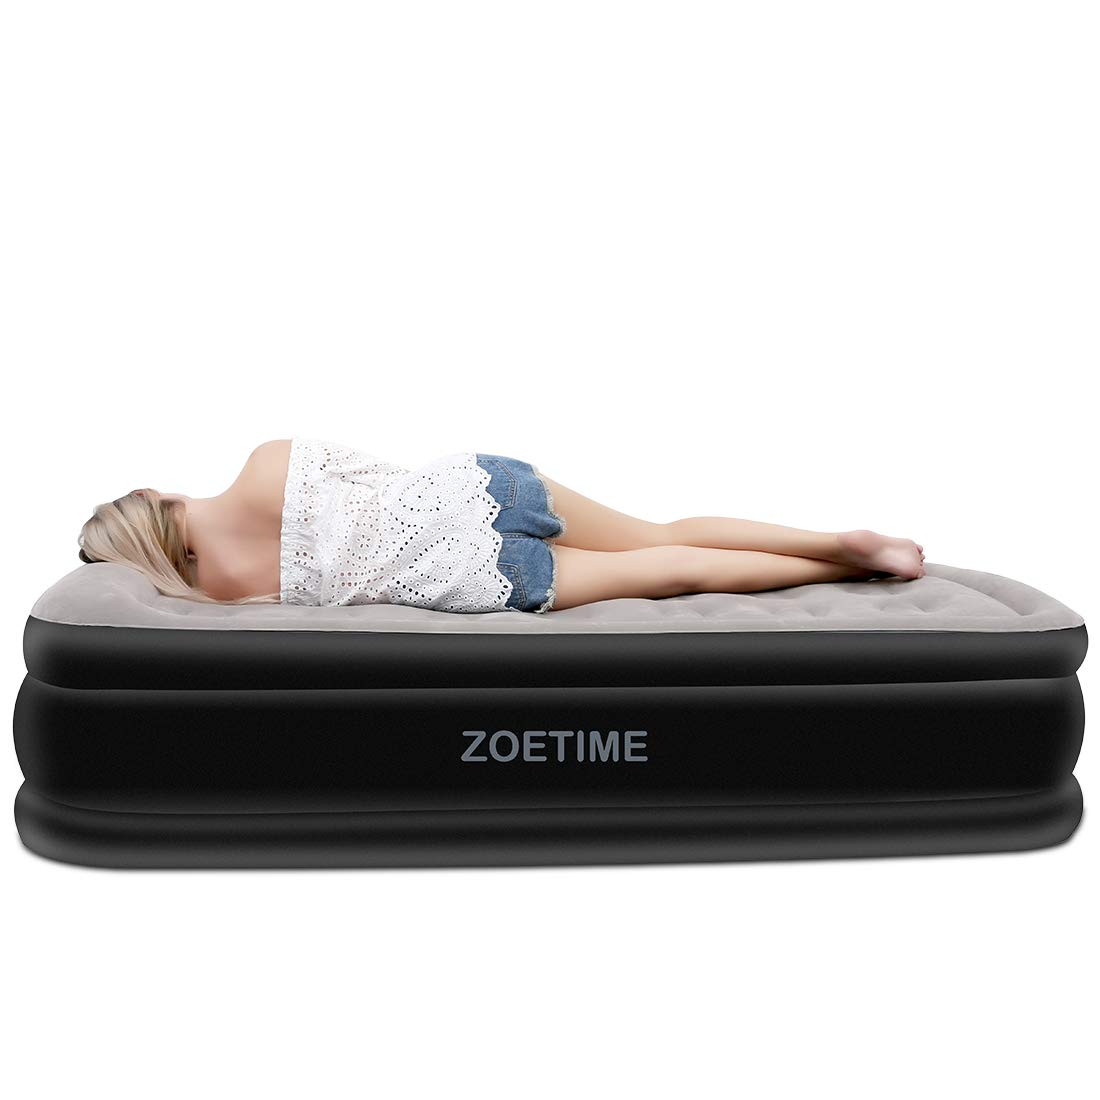 Zoetime Upgraded Twin Air Mattress Blow up Elevated Raised Guest Bed Inflatable Airbed with Built-in Electric Pump, 18.5 inches Height from Pillow to Ground Thickness Increase Version, Gray